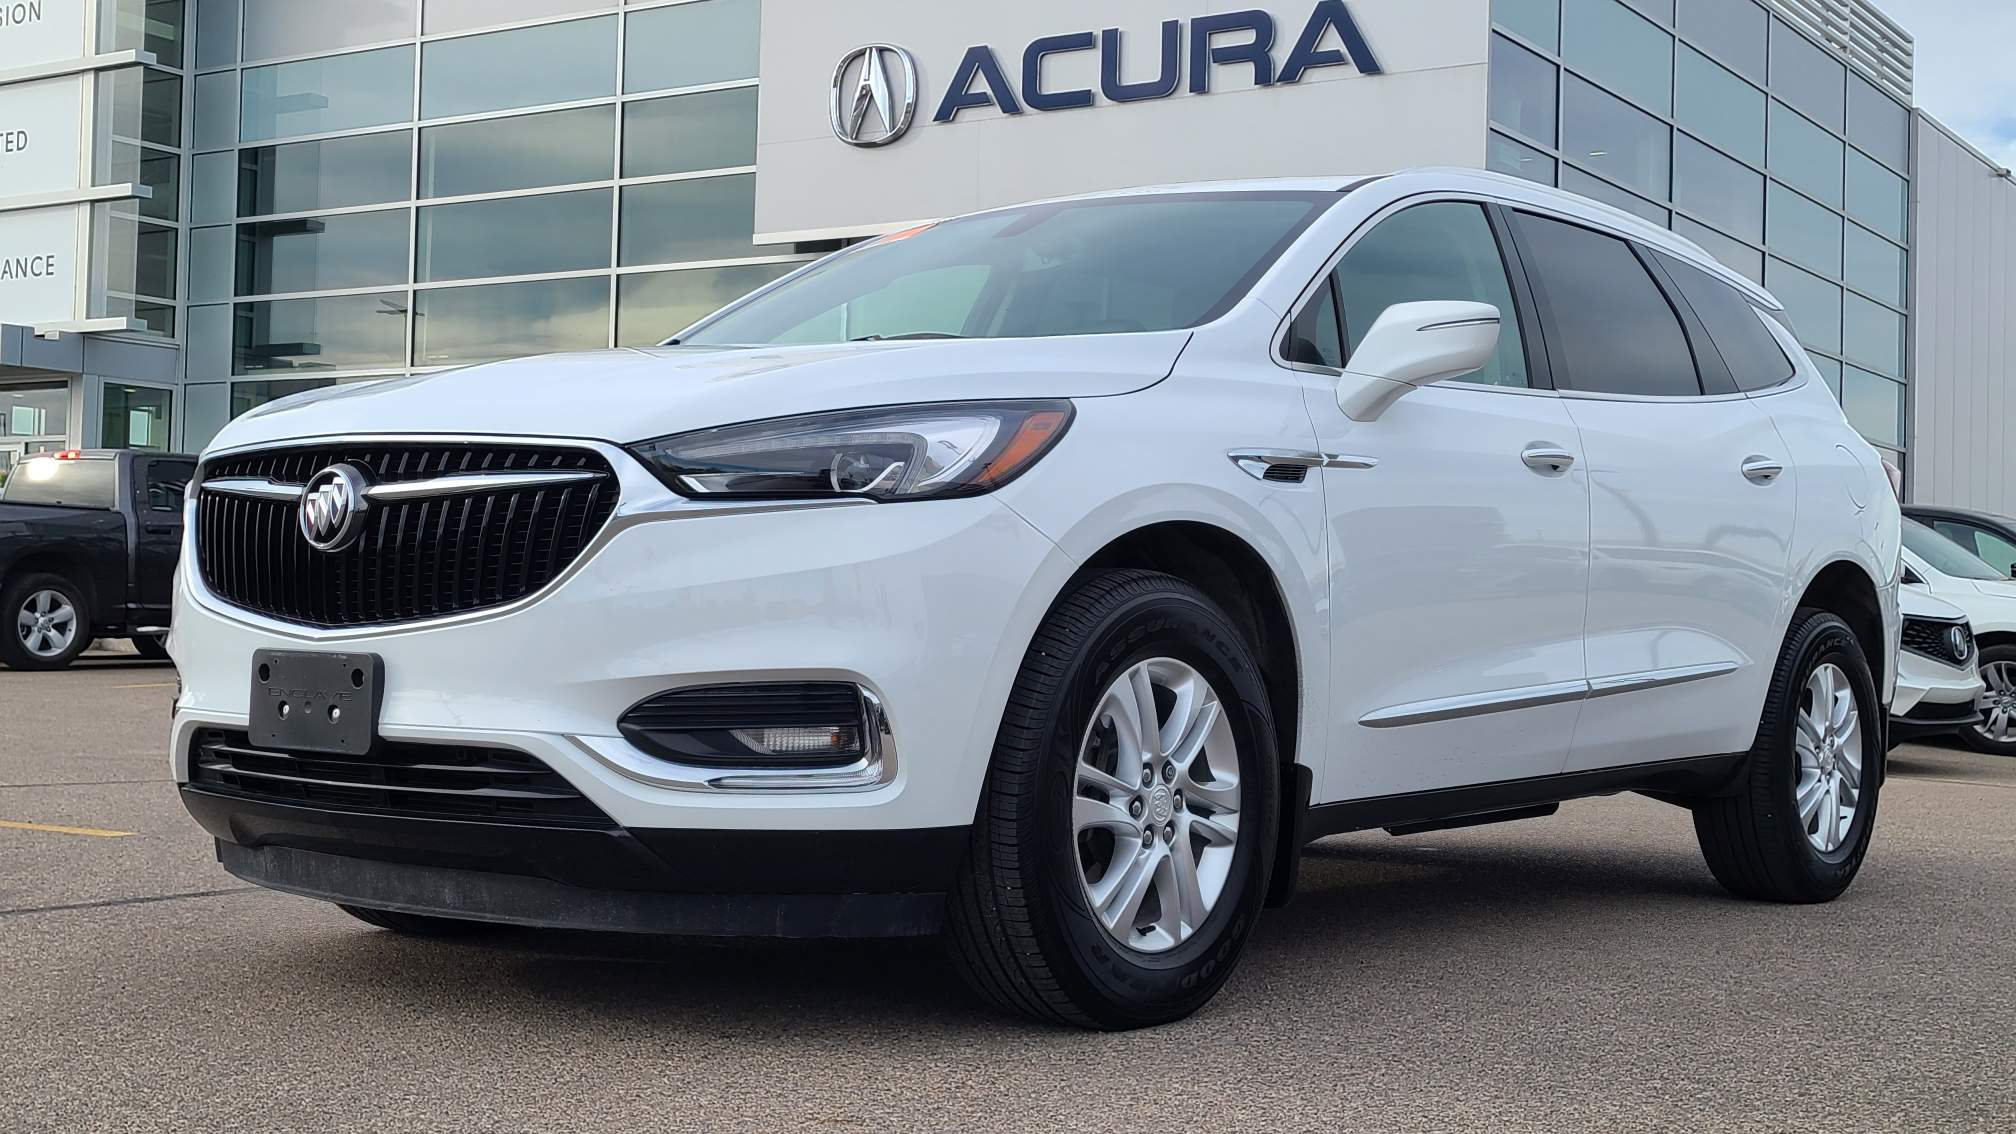 used 2019 Buick Enclave car, priced at $39,856